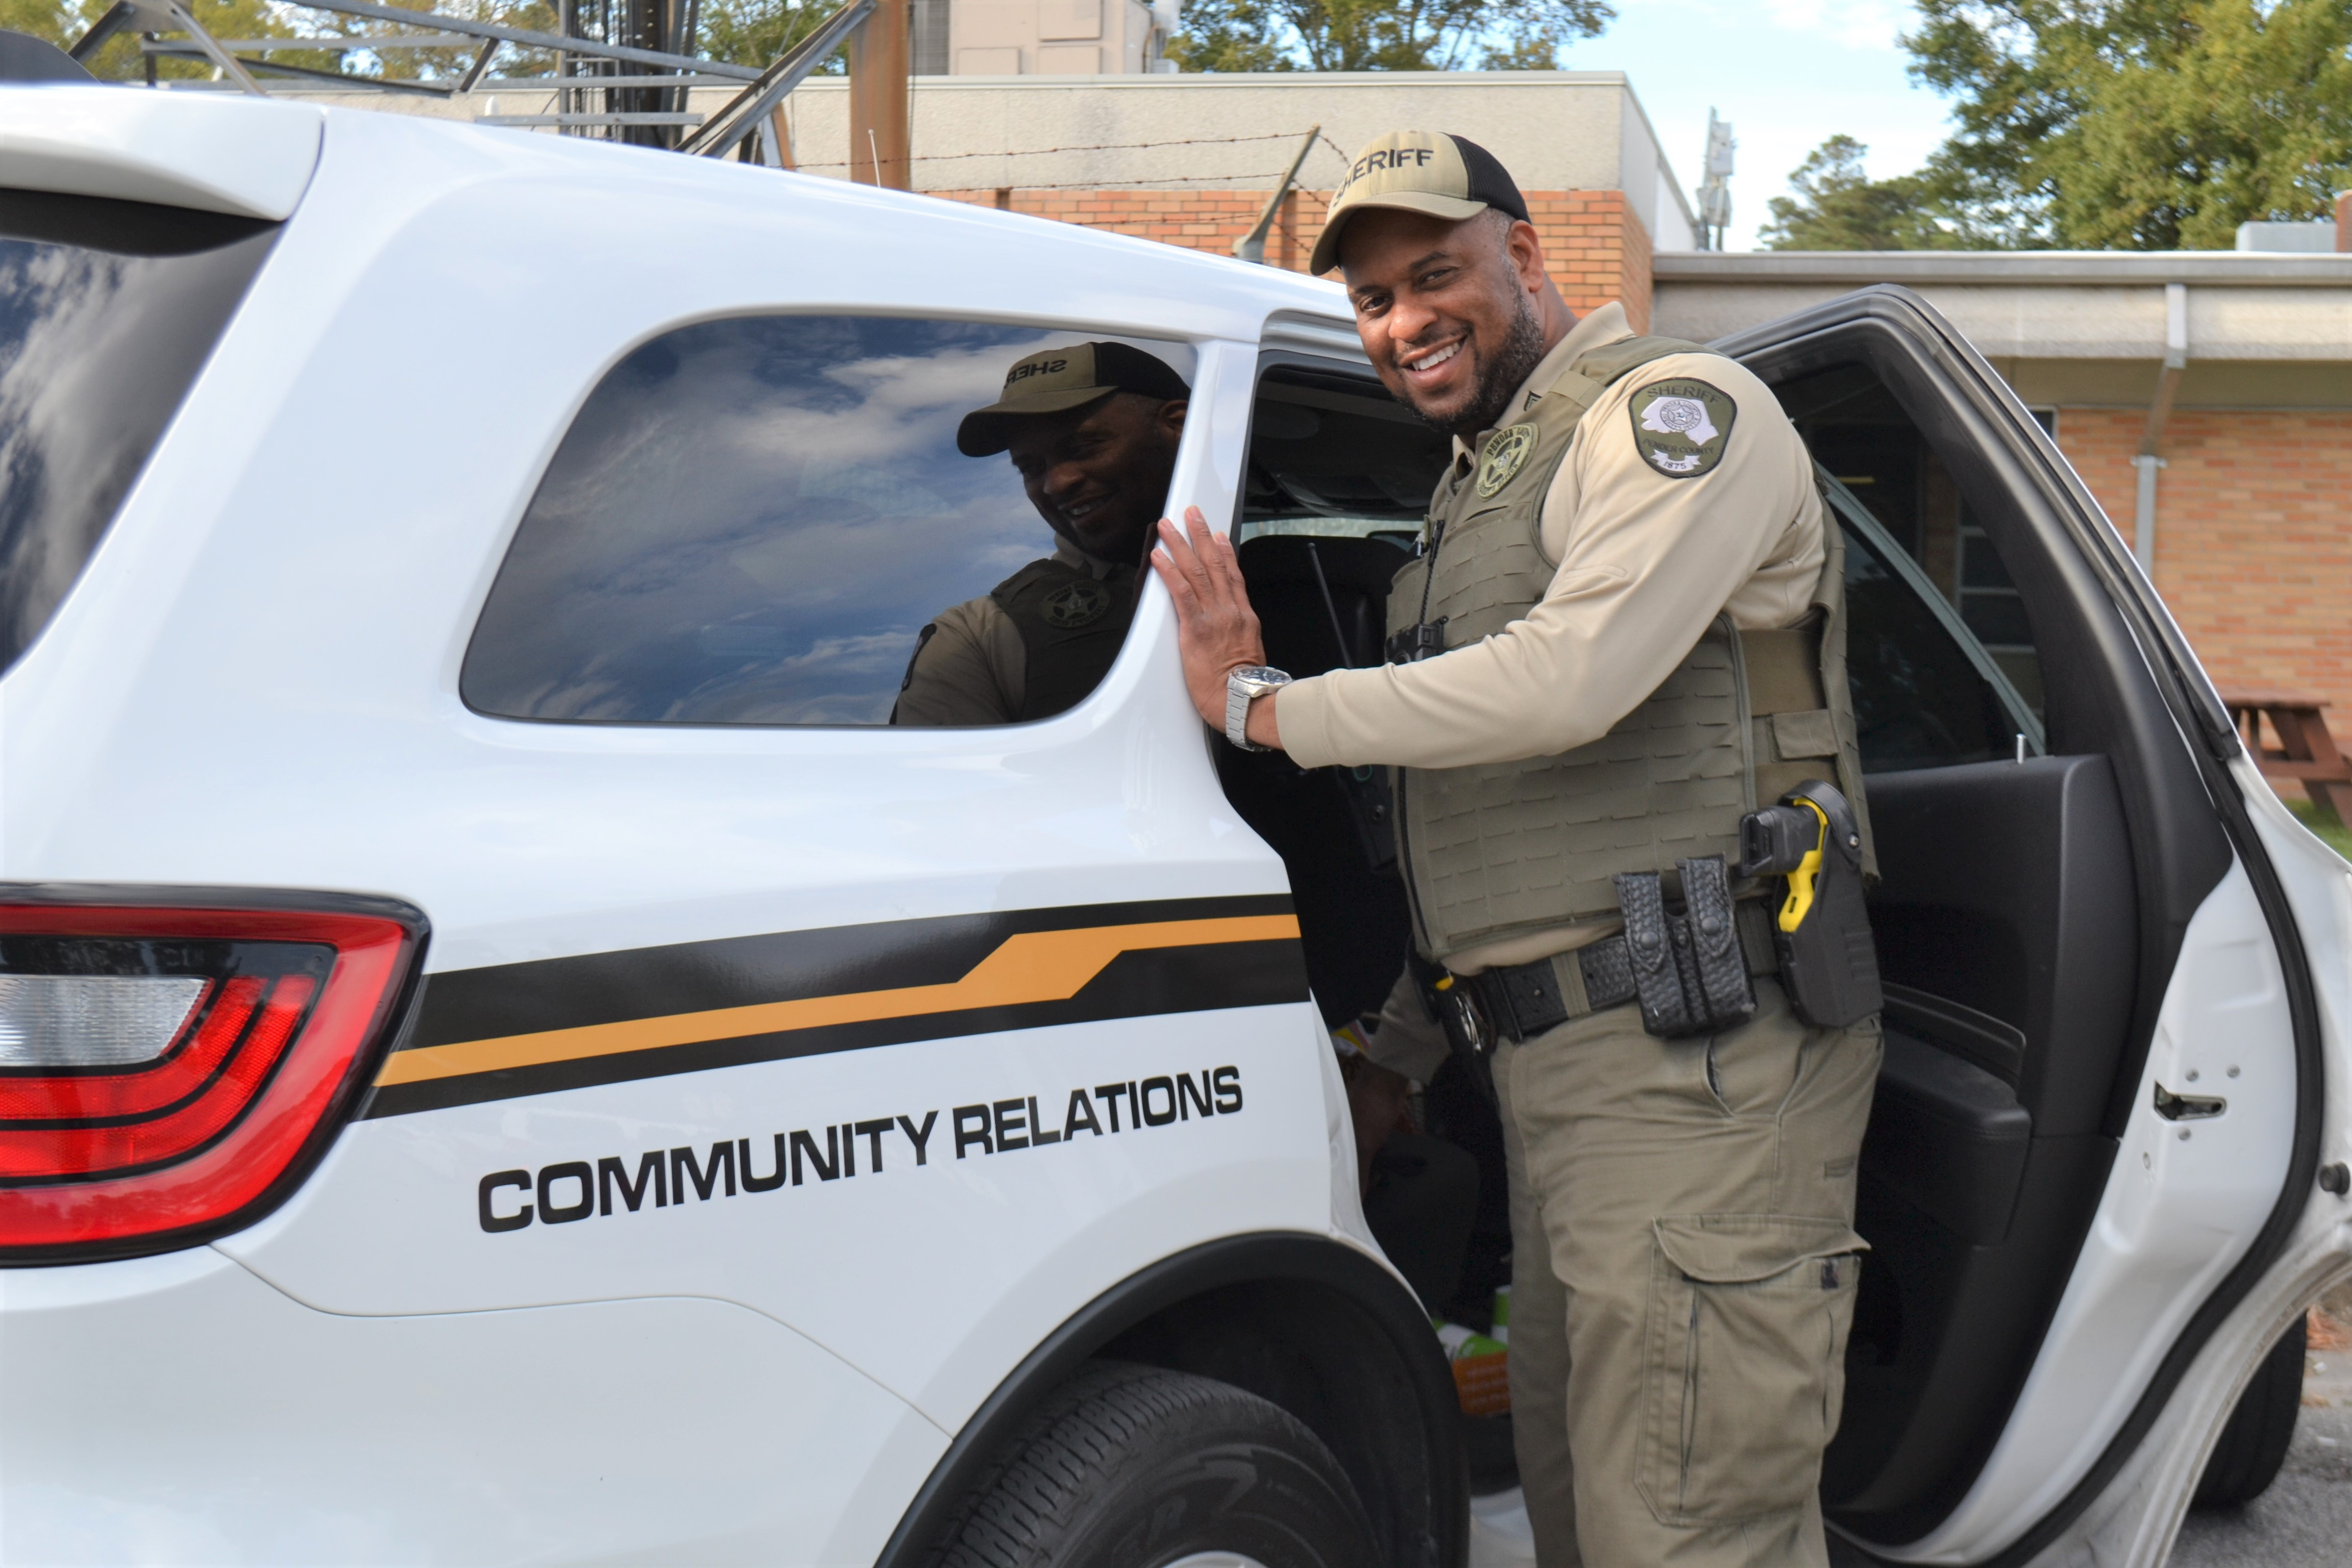 How This Sergeant Brings Positivity to Police Work